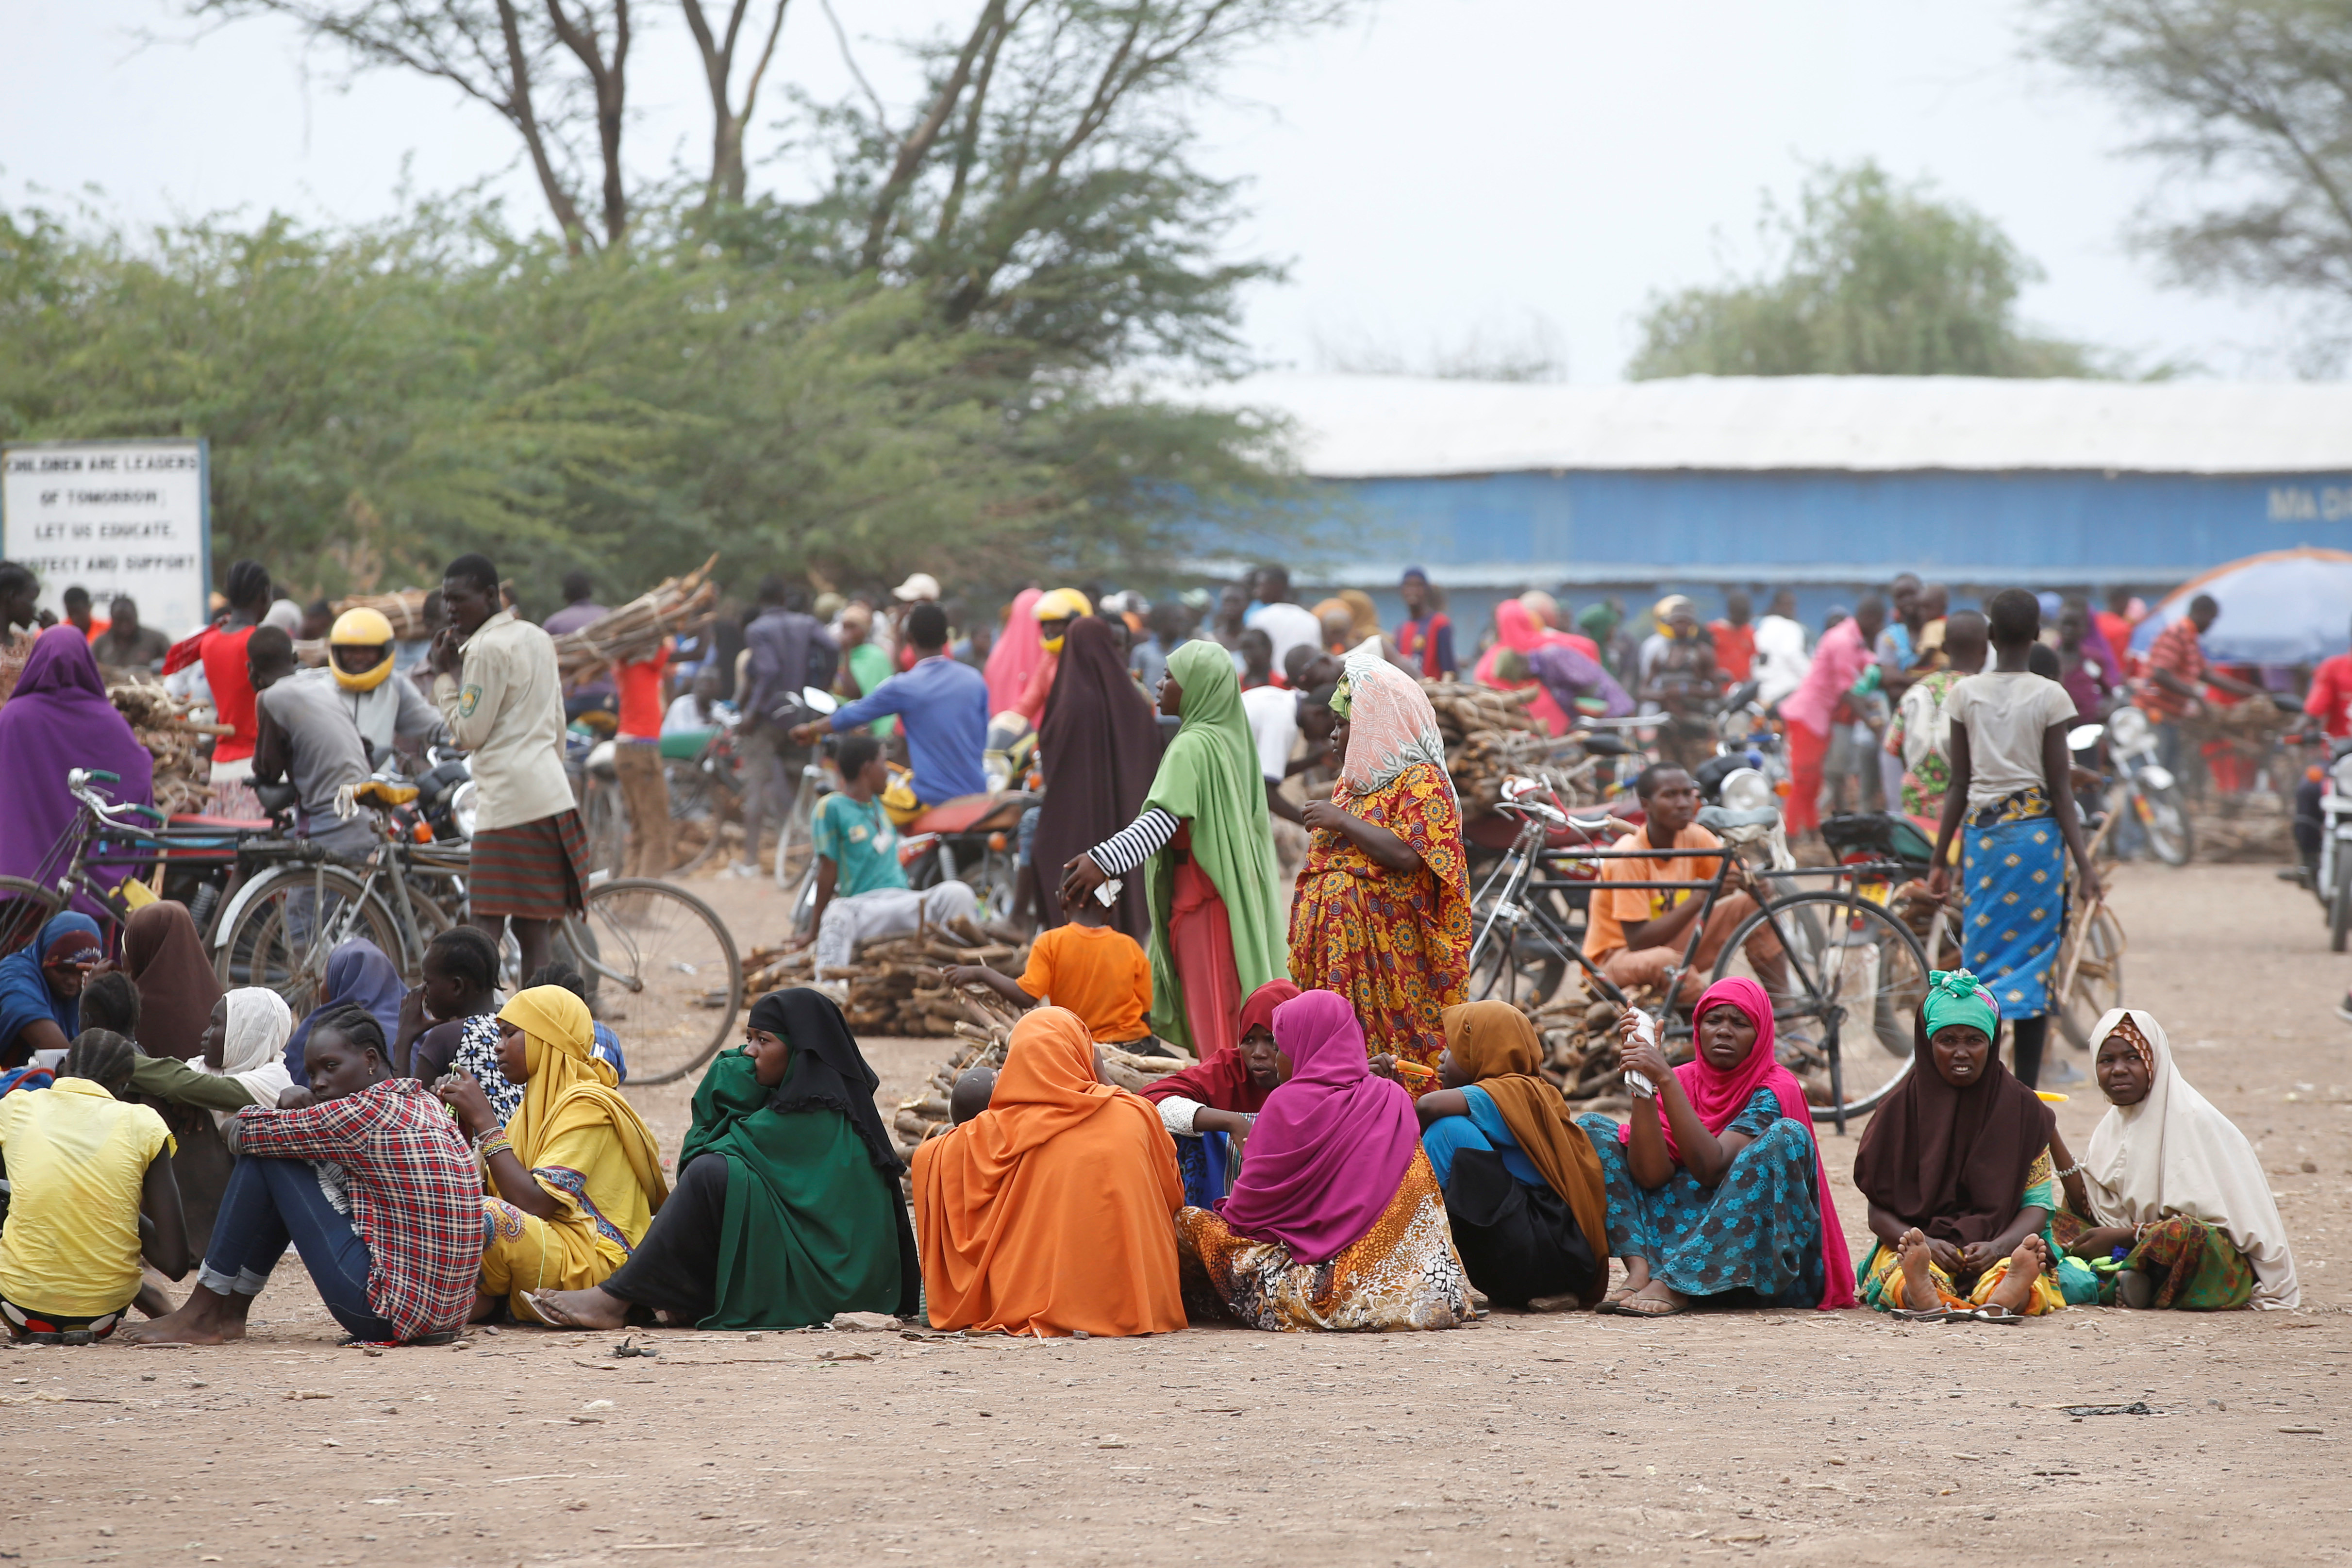 Women wait in line to receive aid at the Kakuma refugee camp in northern Kenya, March 6, 2018.